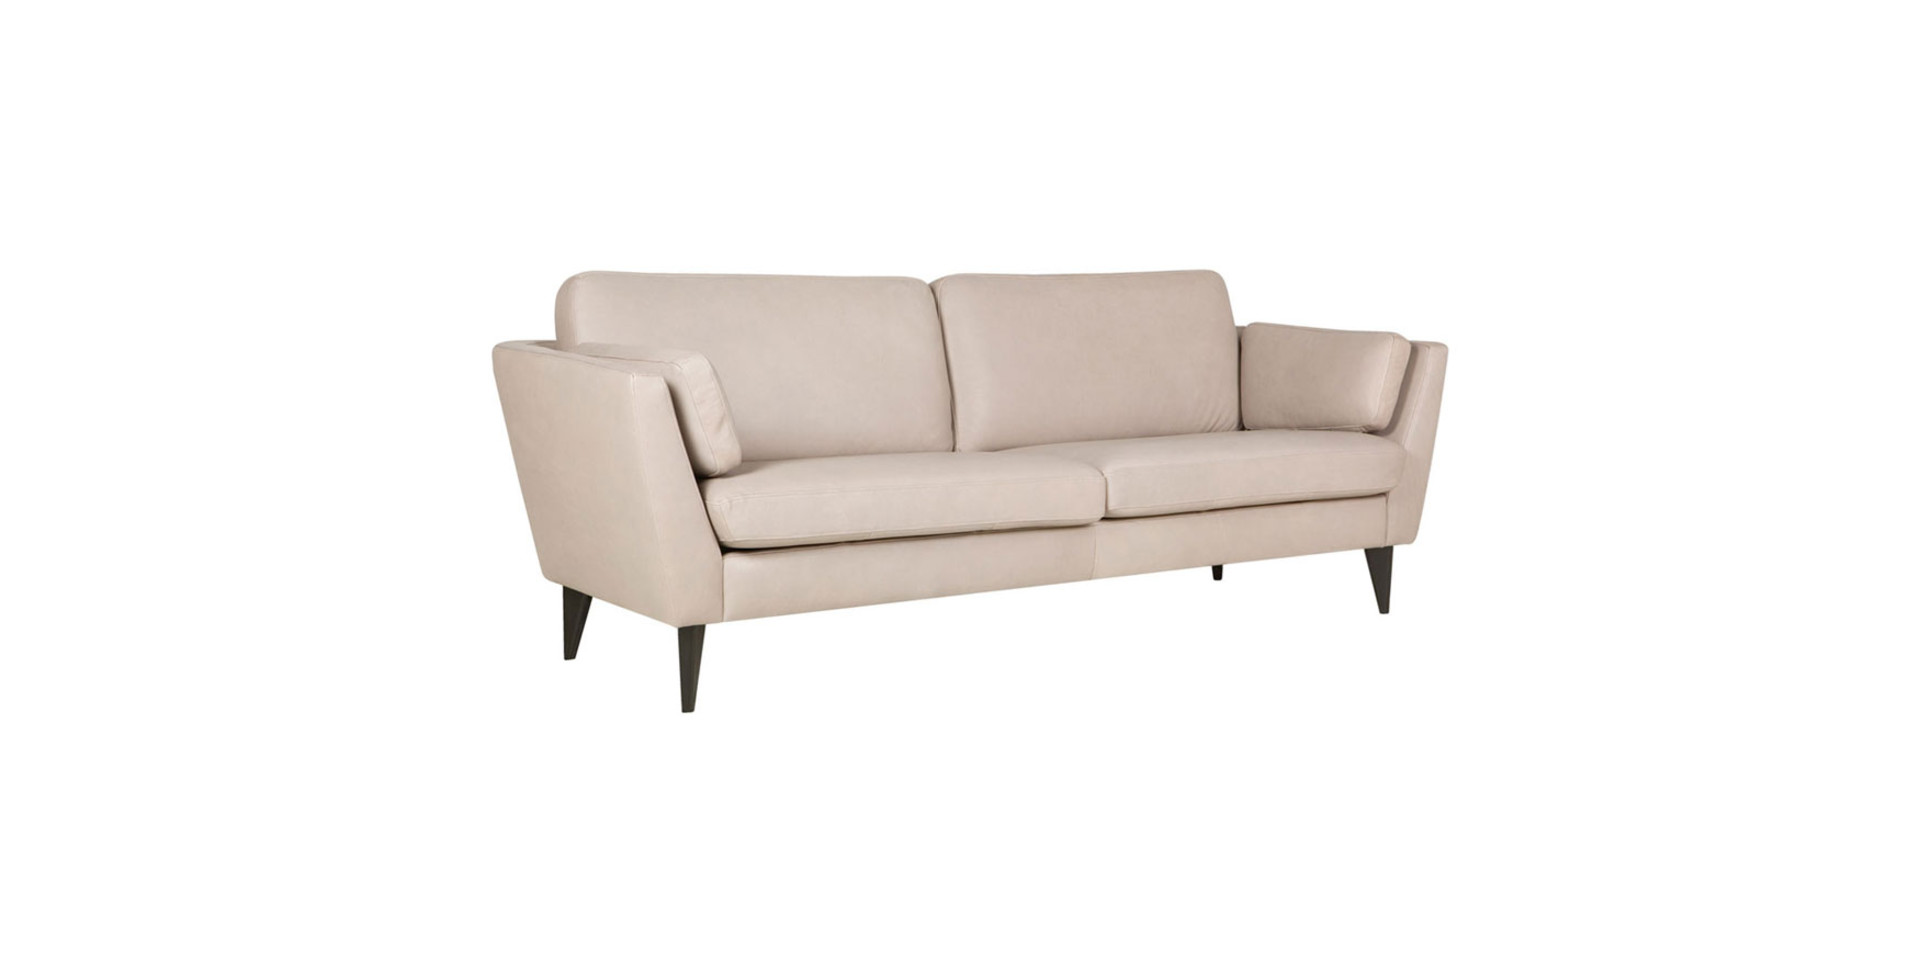 sits-mynta-canape-3seater_aniline_opal_2_0